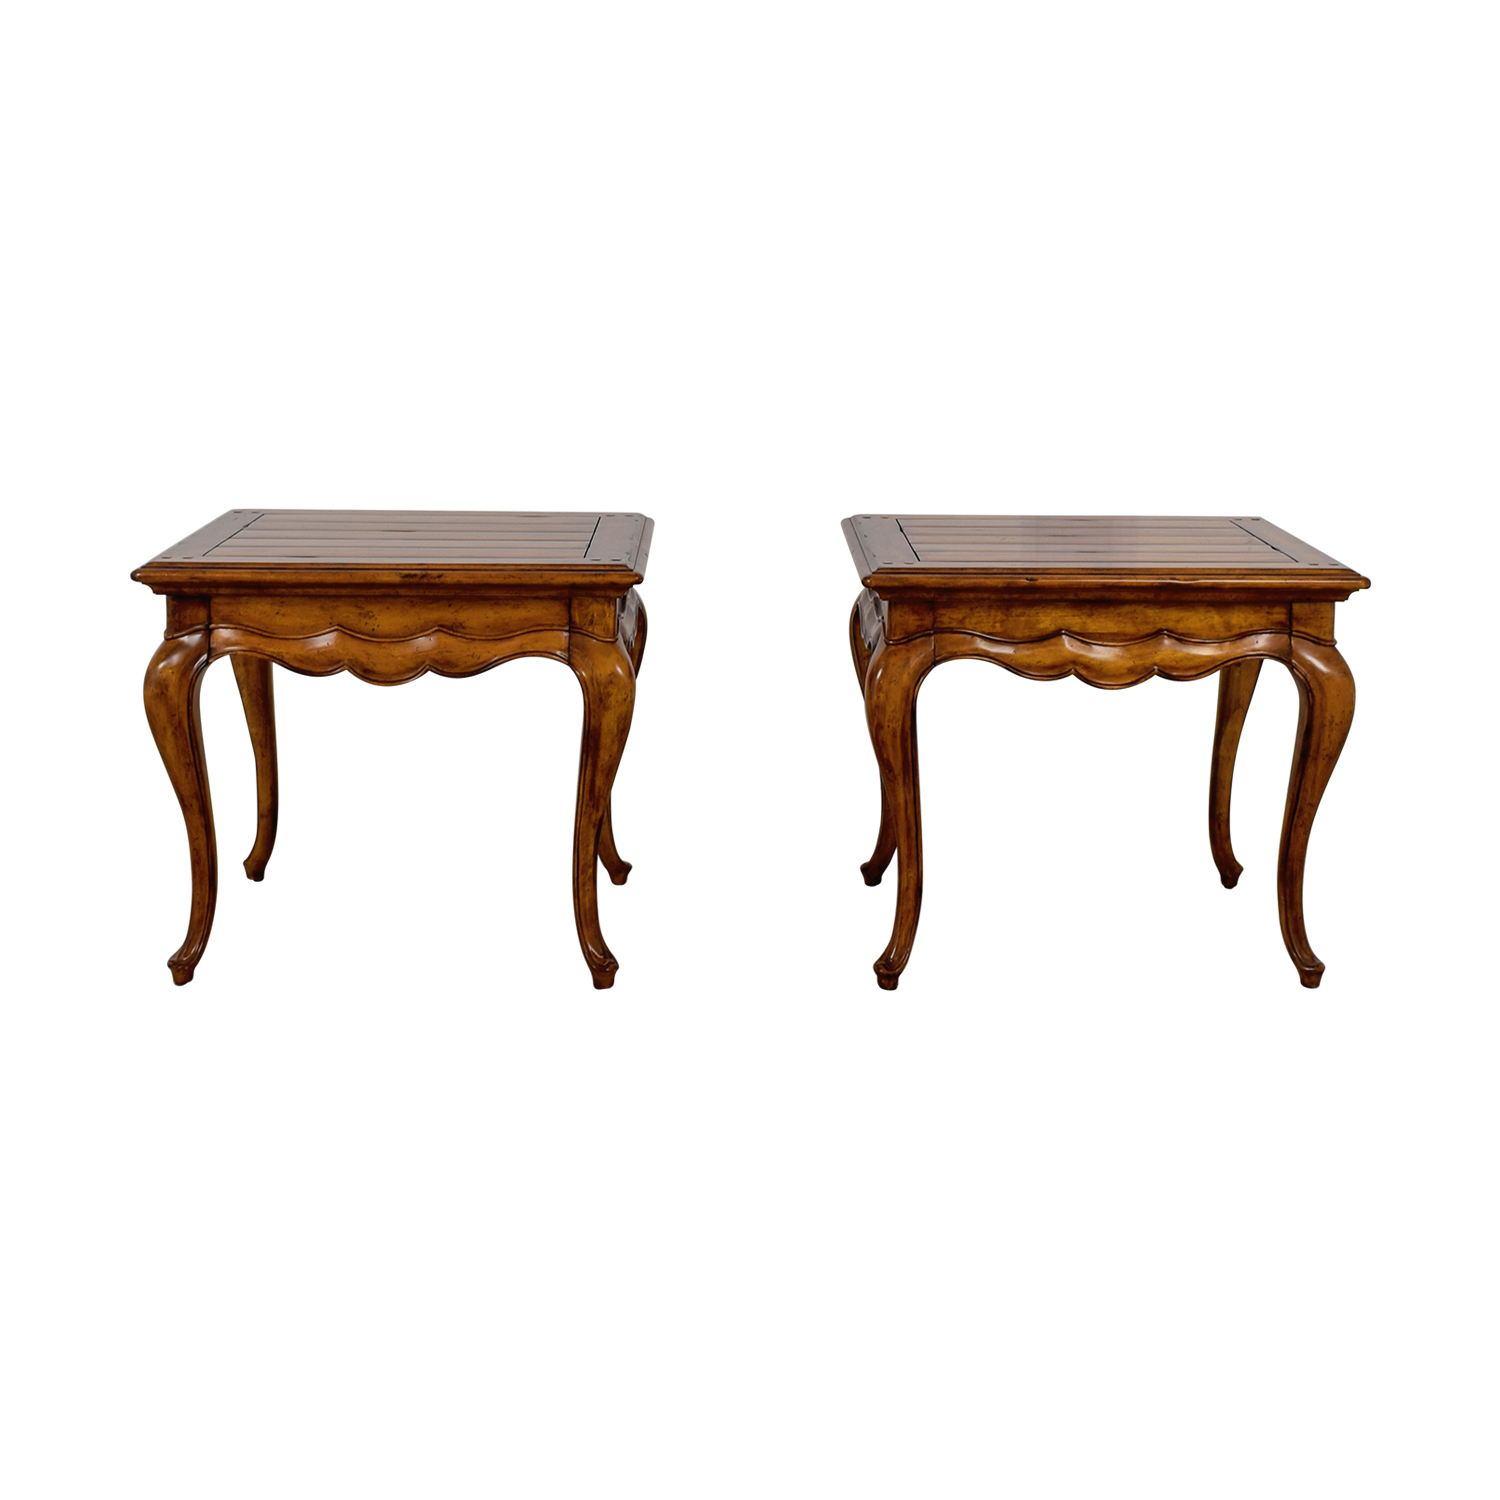 Thomasville Dovetailed Wood End Tables / End Tables